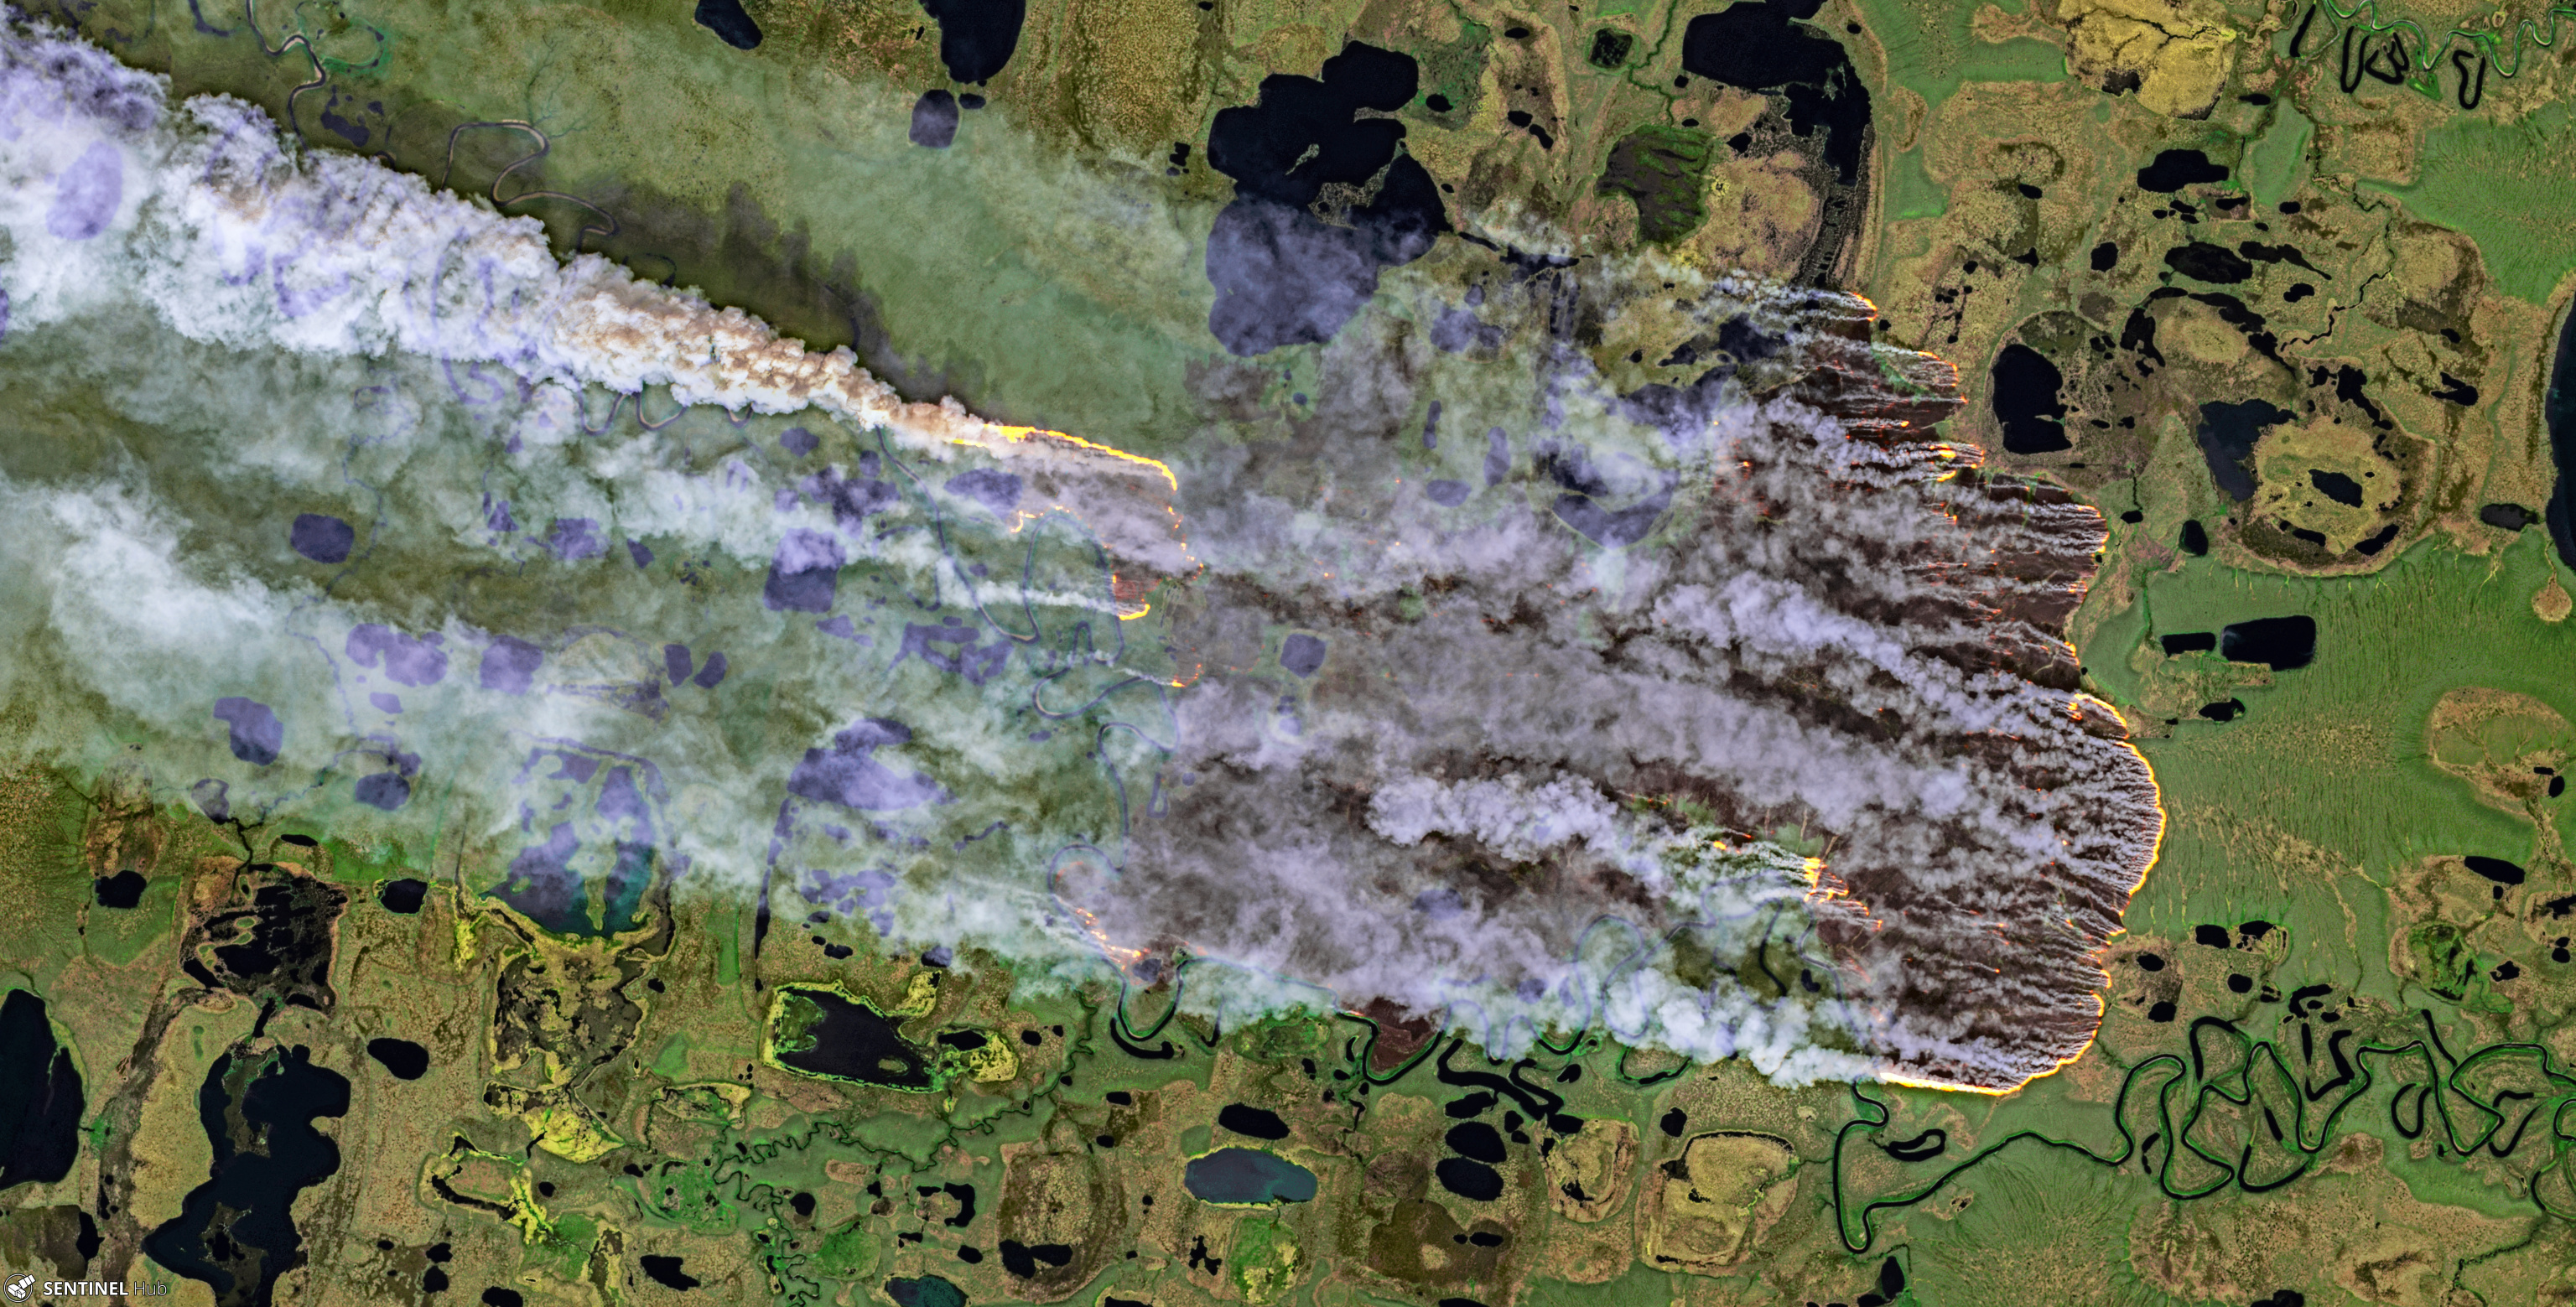 Looking at Wildfires (and more…) – An Introduction